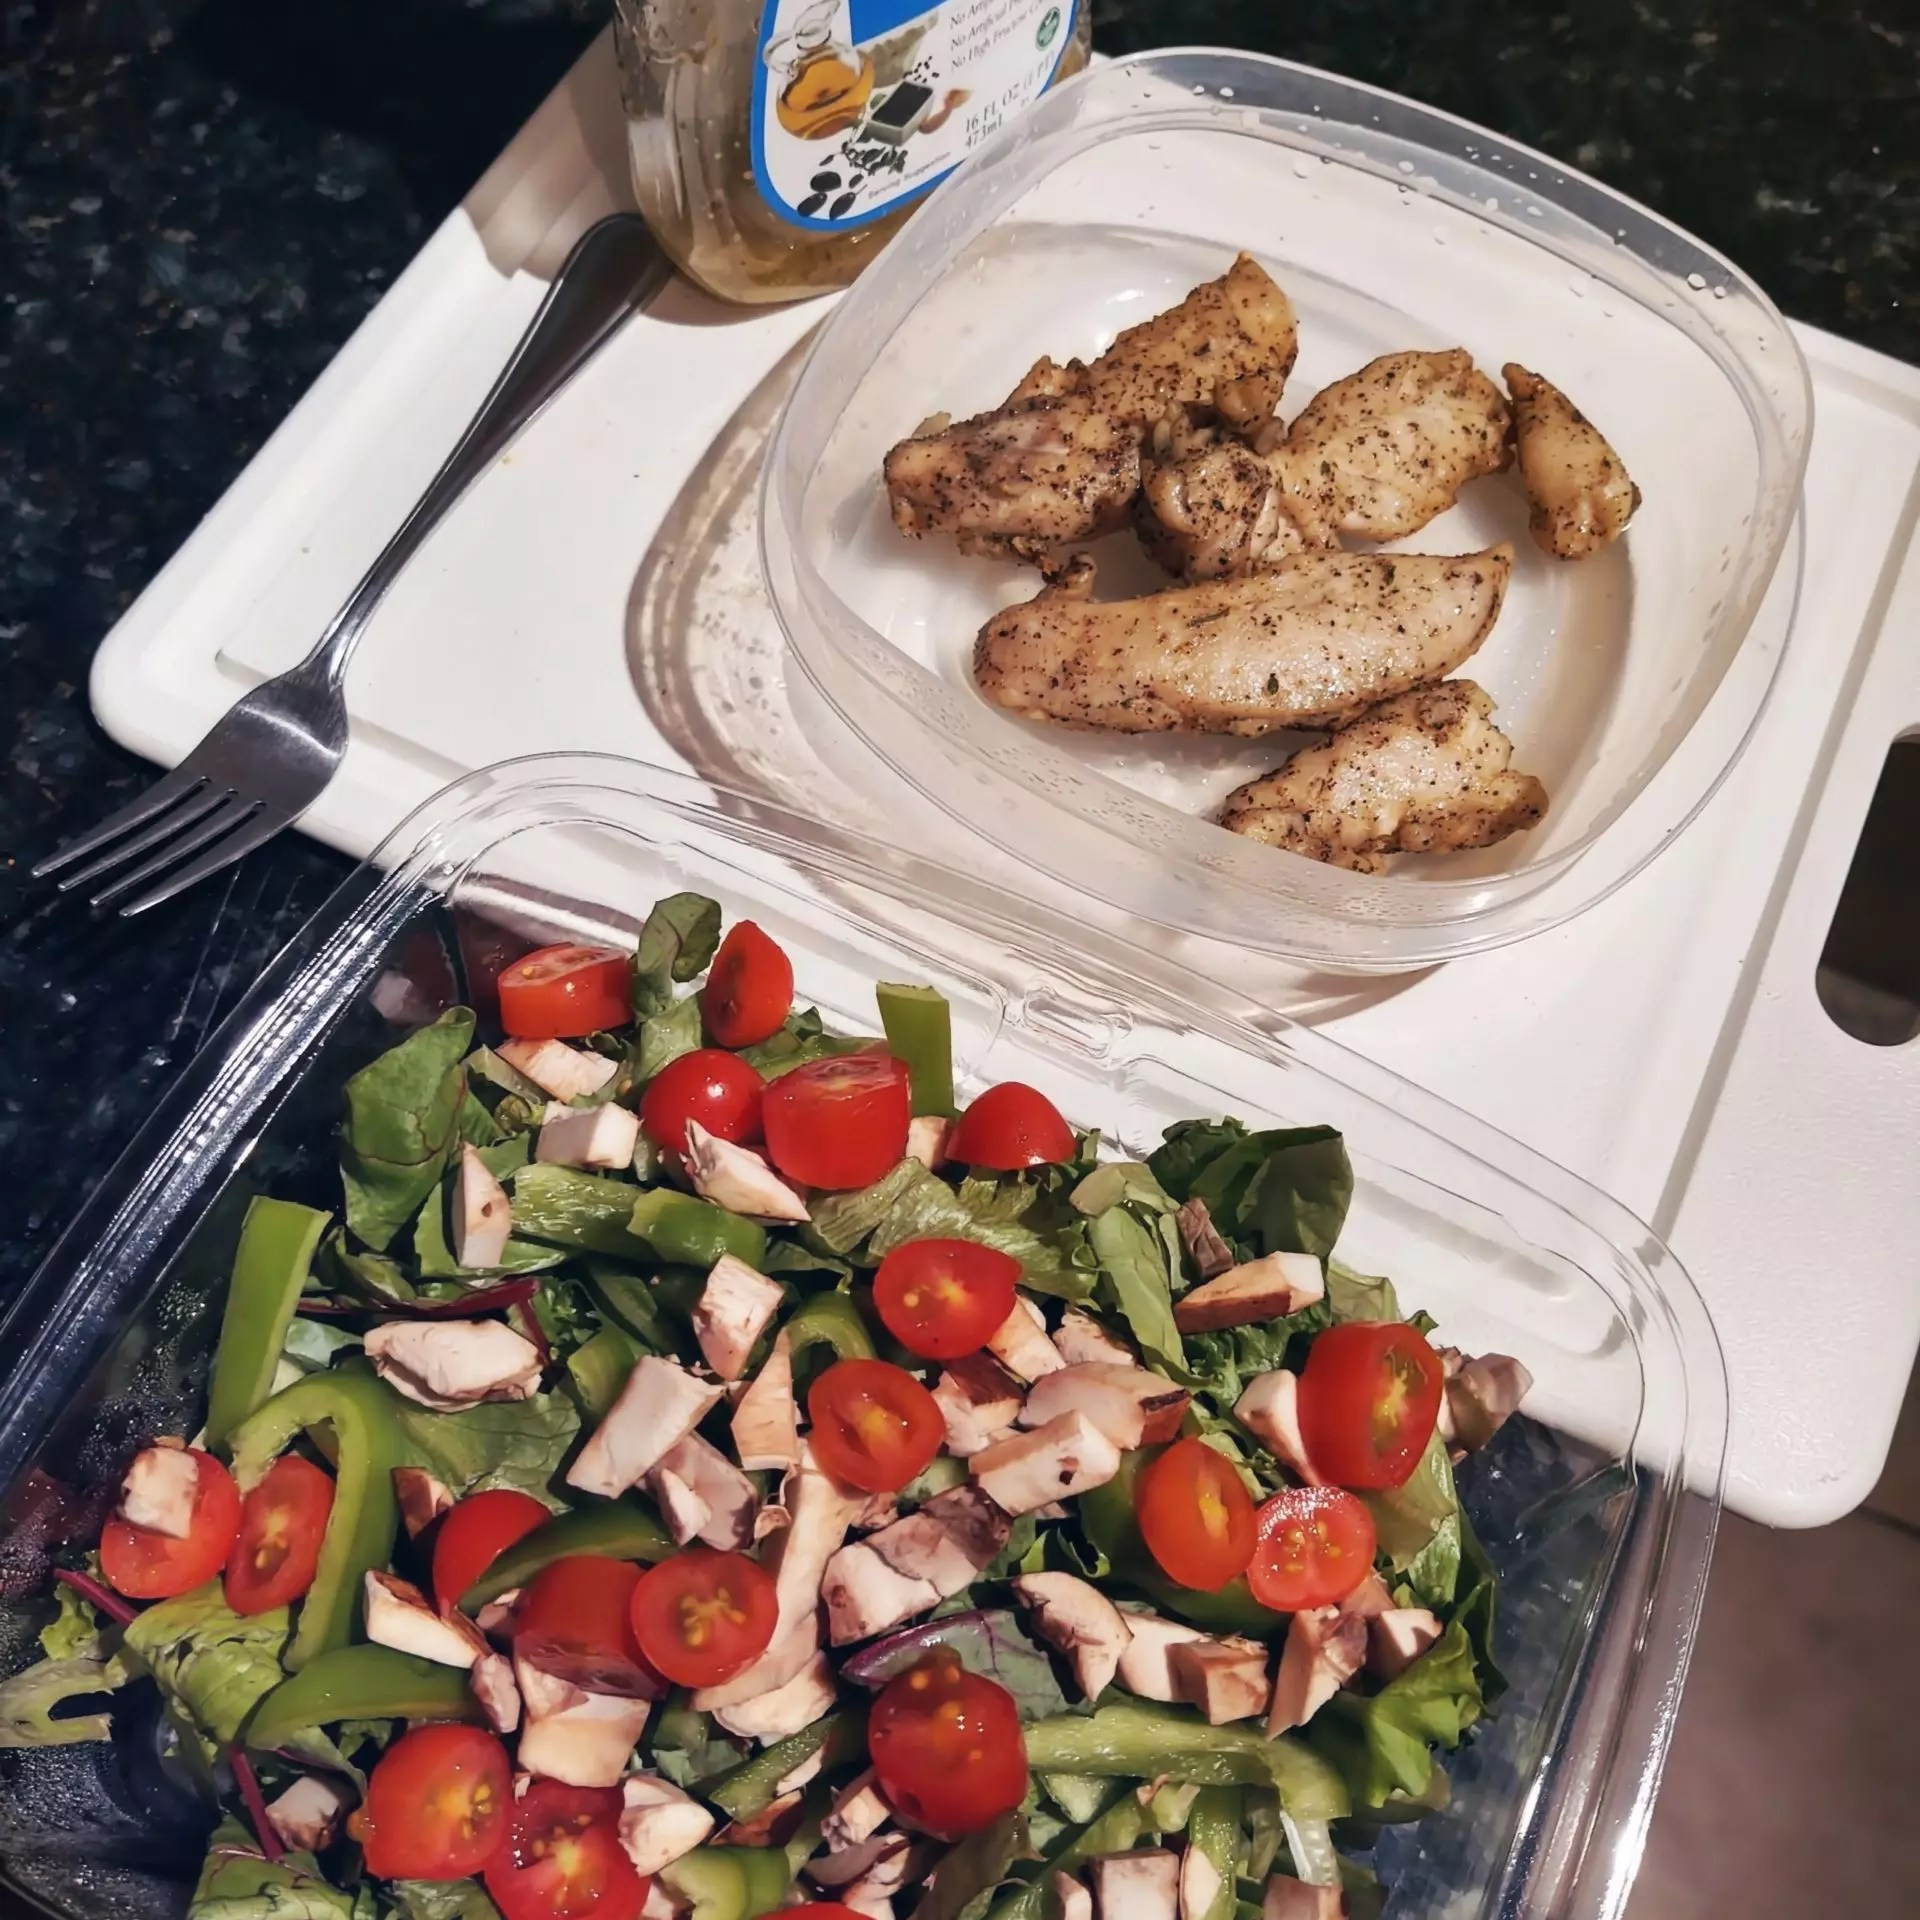 Prepared ingredients for a chicken salad - including the brand of salad dressing I use.